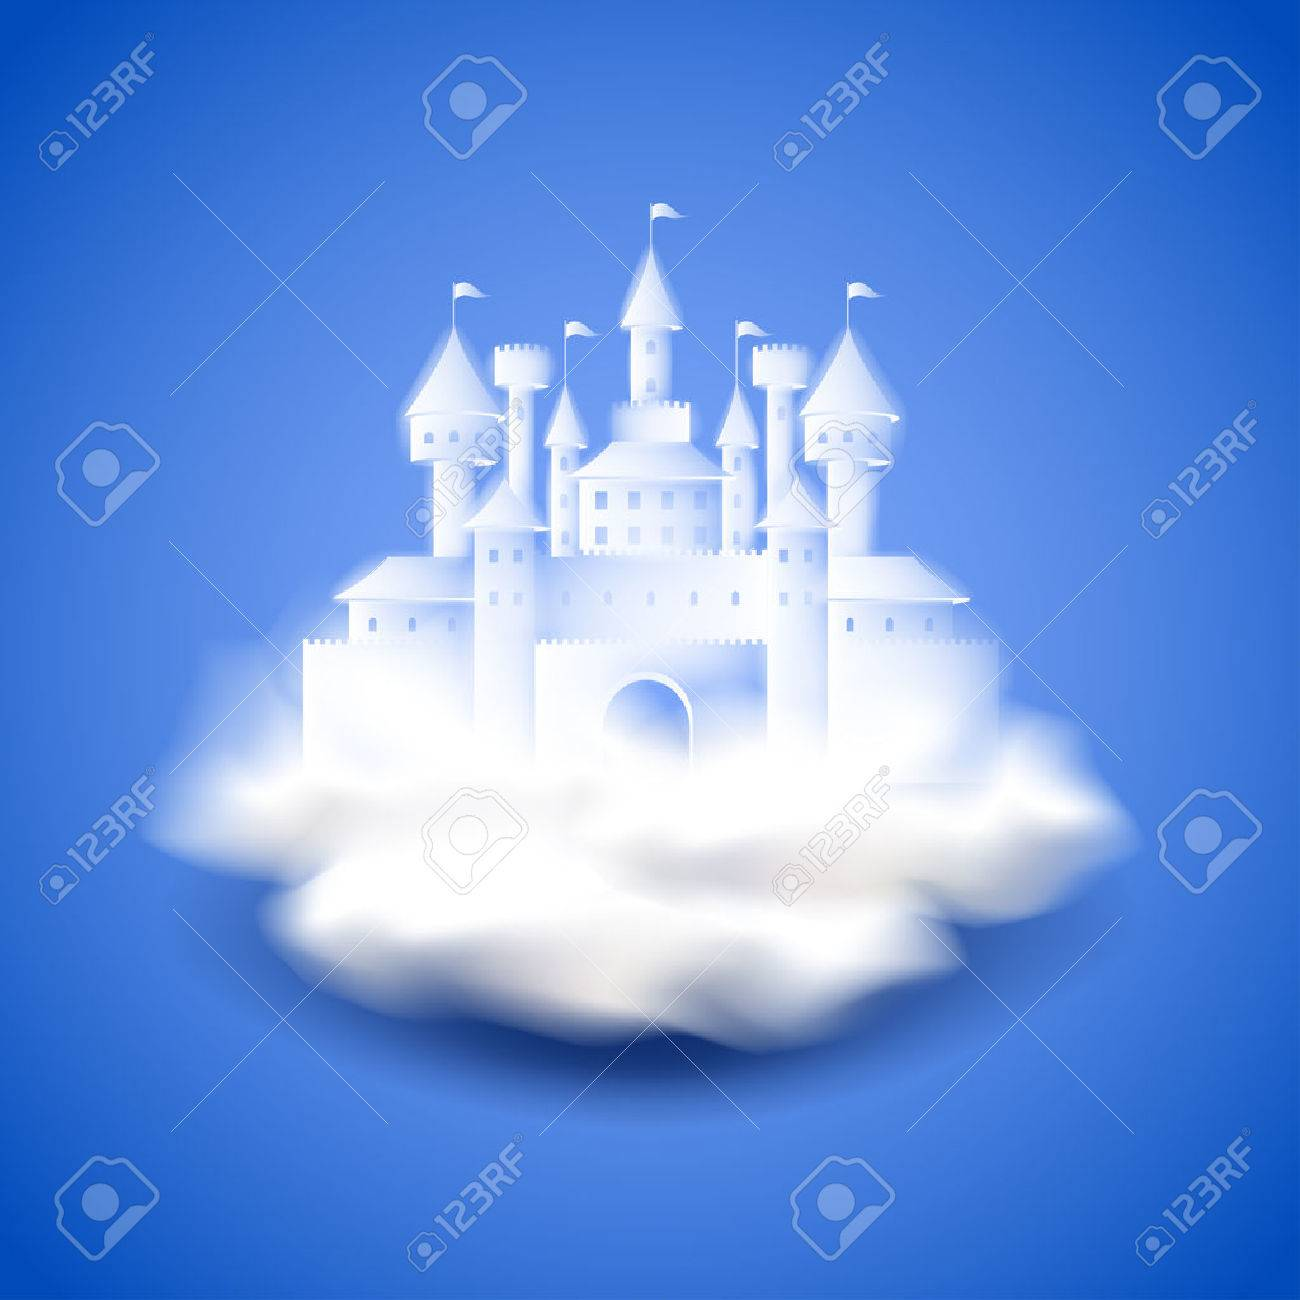 Air castle on blue photo realistic vector background - 39879972